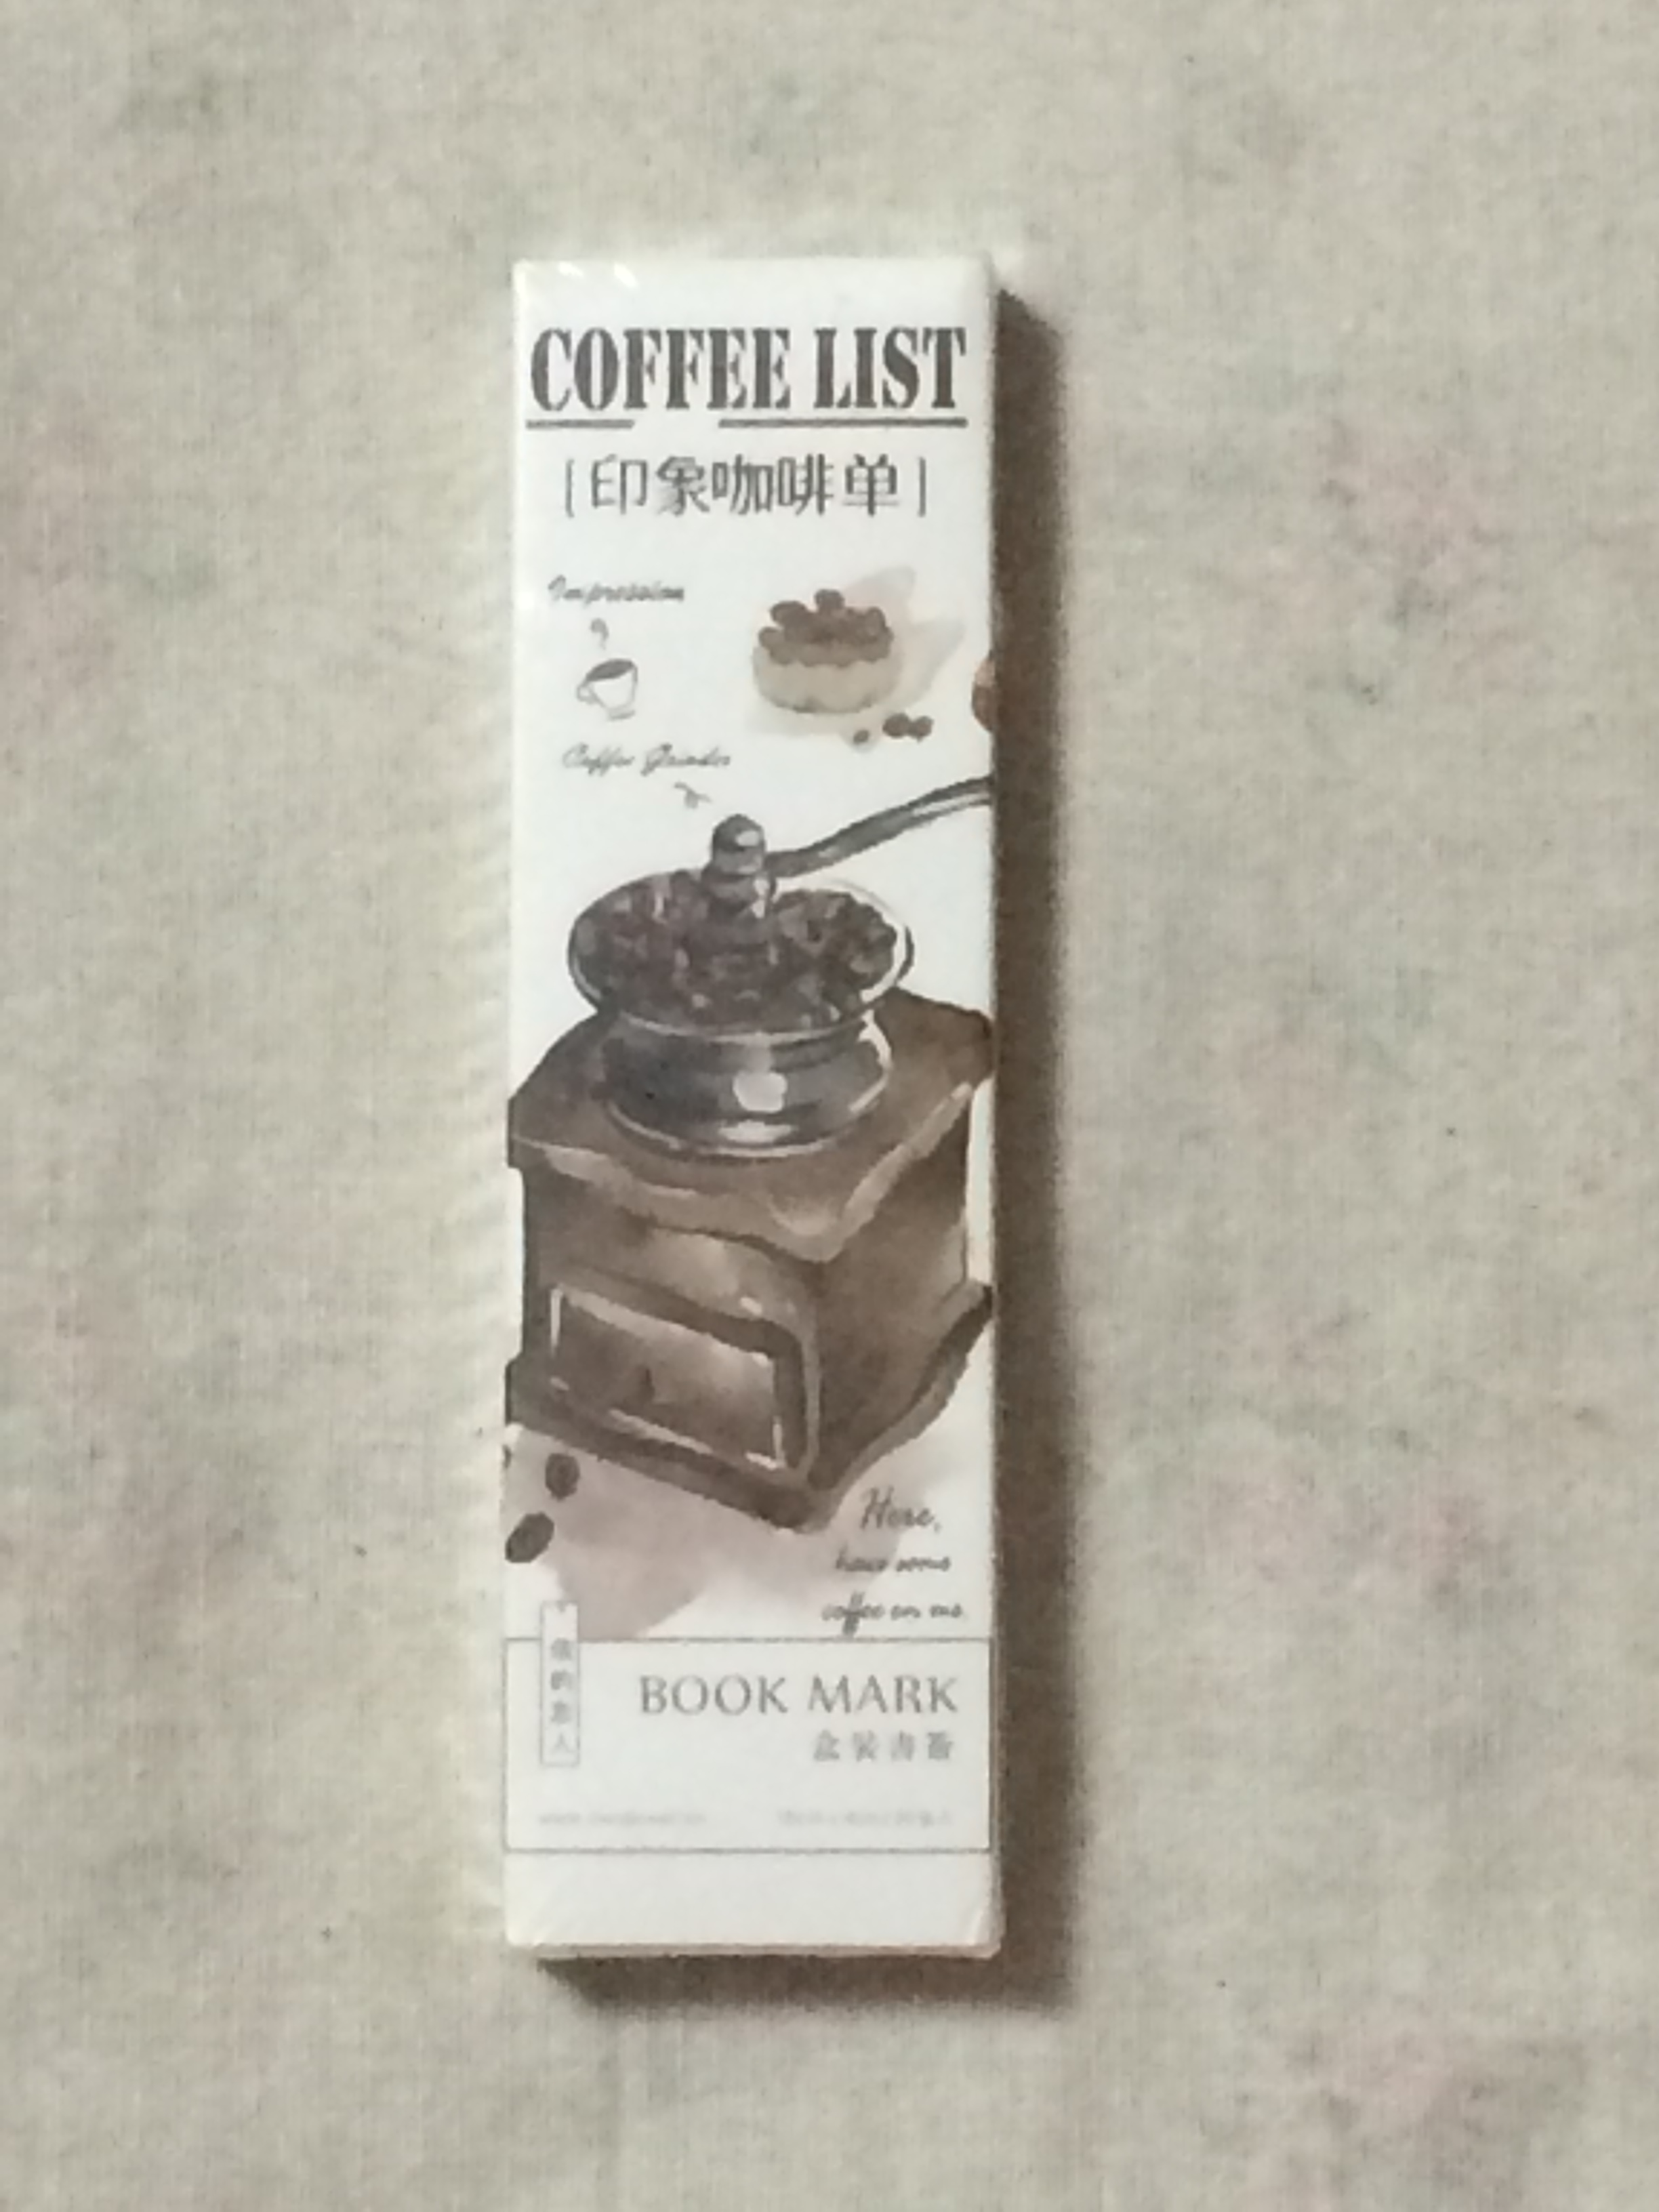 Coffee List Diy Paper Bookmark(1pack=30pieces)